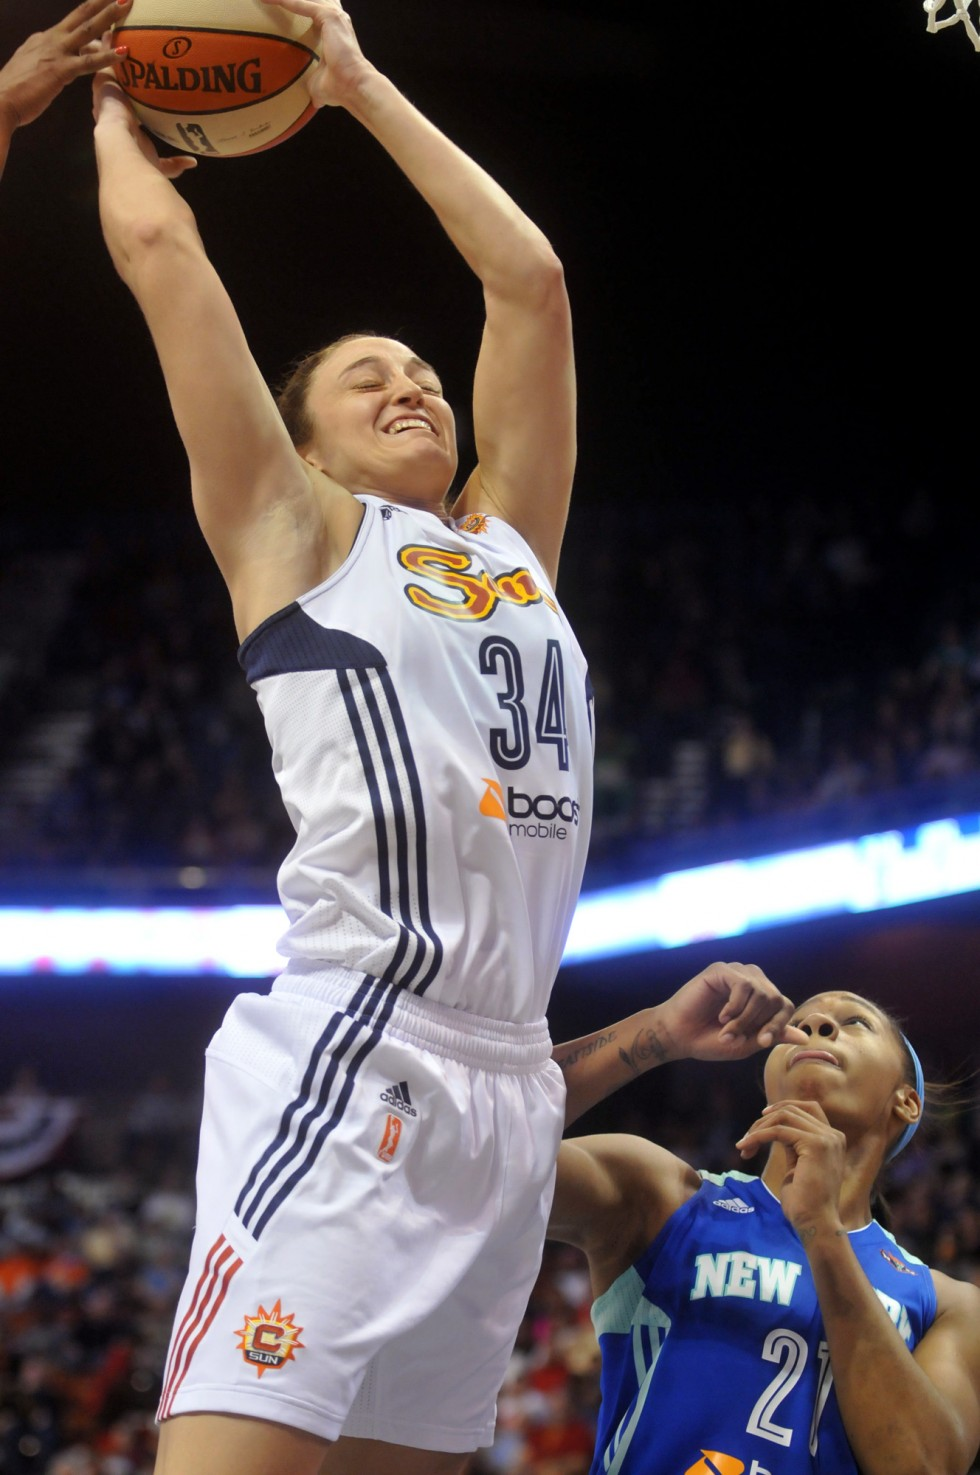 Connecticut Sun rookie Kelly Faris crashes the boards during the Sun season opener at Mohegan Sun Arena Saturday night.  Looking on is New York Liberty's Alex Montgomery. Connecticut Sun forward Mistie Bass, Kelly Faris and New York Liberty's Cappie Pondexter in action at the Sun season opener at Mohegan Sun Arena Saturday night. Photo by BRAD HORRIGAN   bhorrigan@courant.com